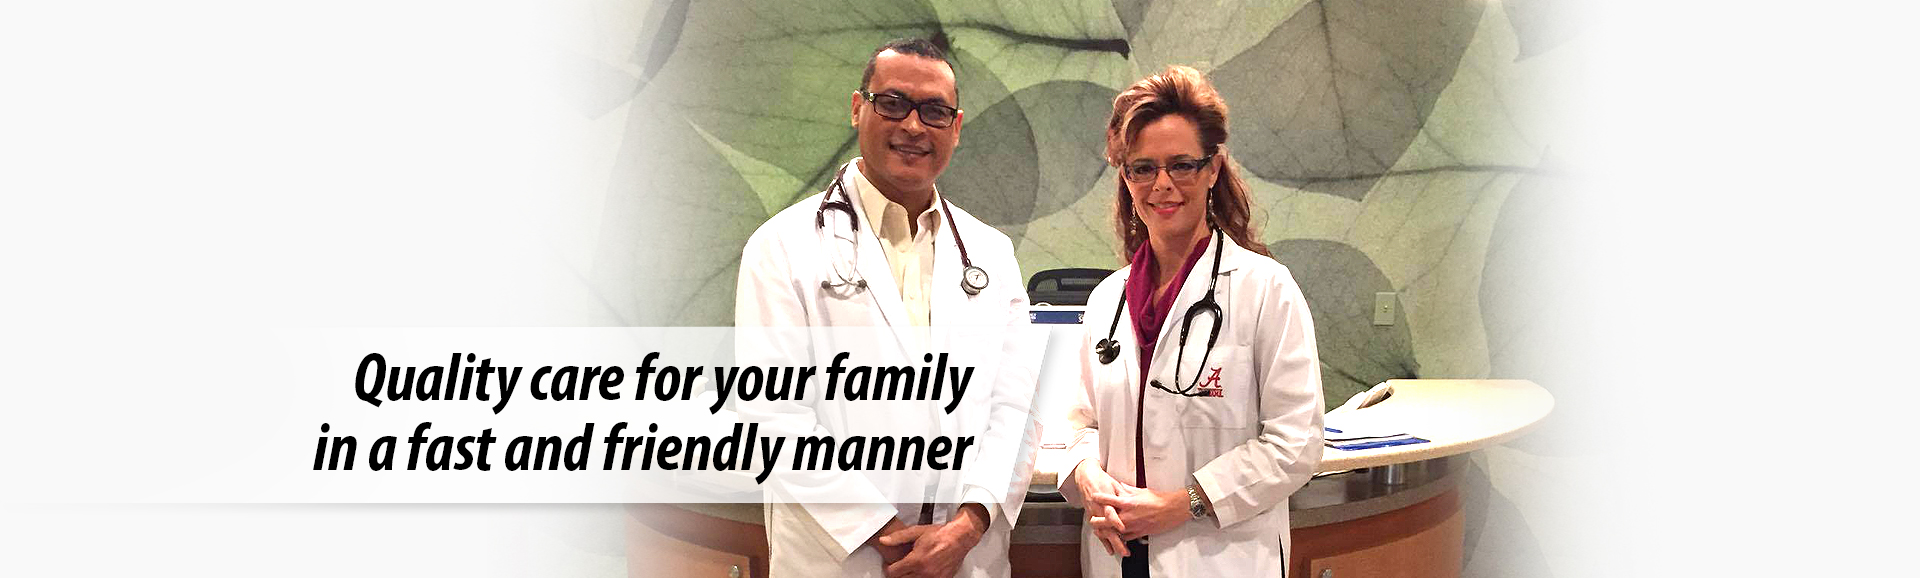 Quality urgent care for your Ocala family in a fast and friendly manner.